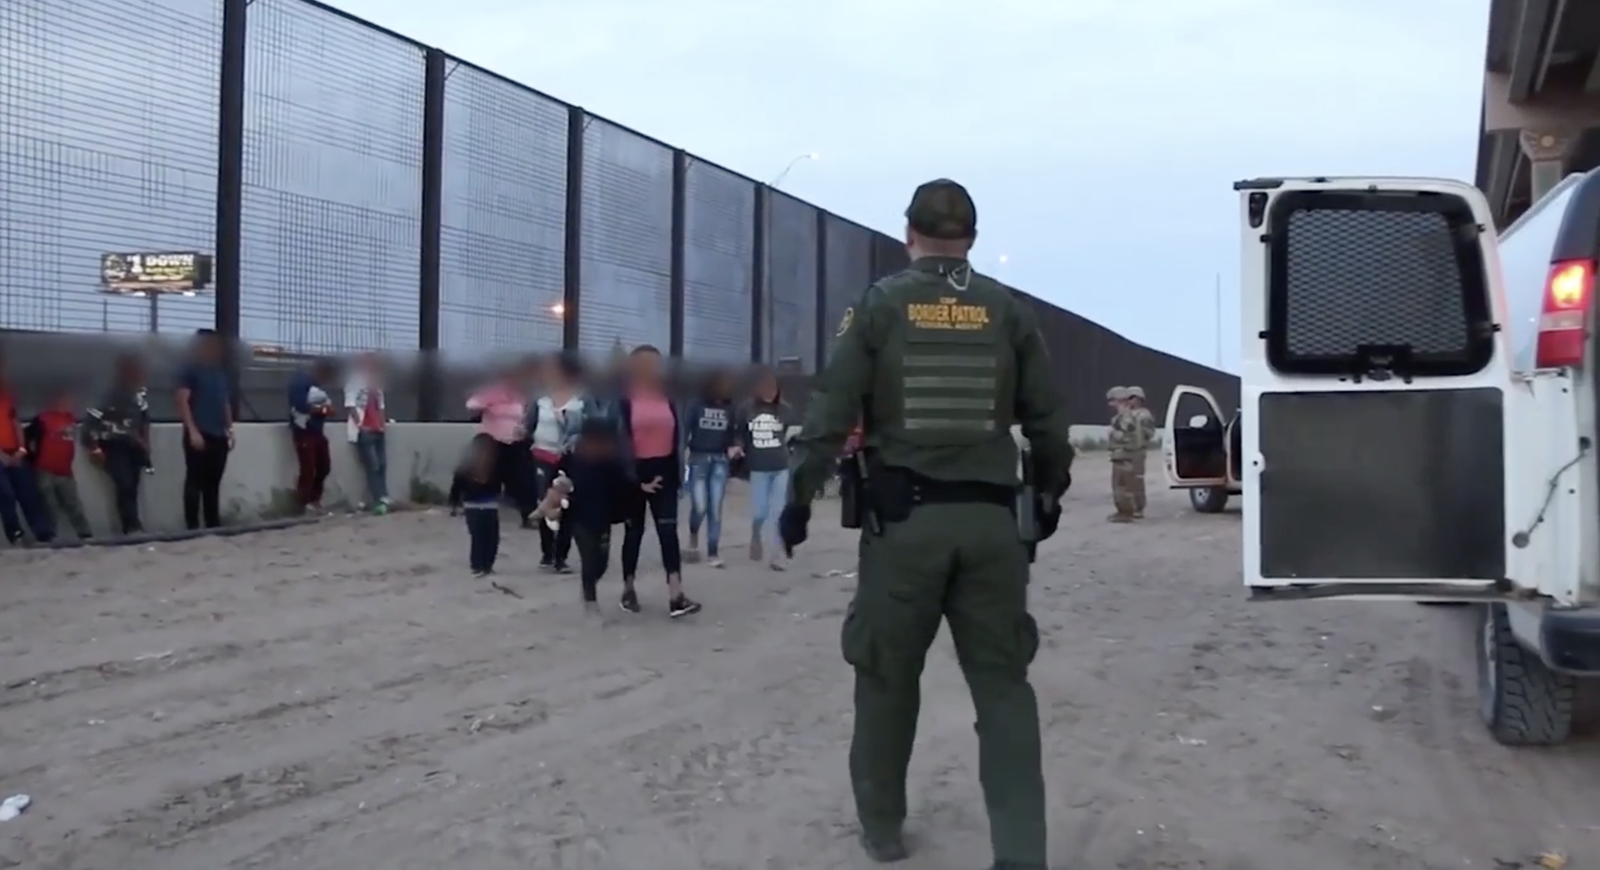 For now, the door to the United States will be closed to many more. The foundation underneath it, this country's immigration policy, showing more signs of instability. (Sinclair Broadcast Group)